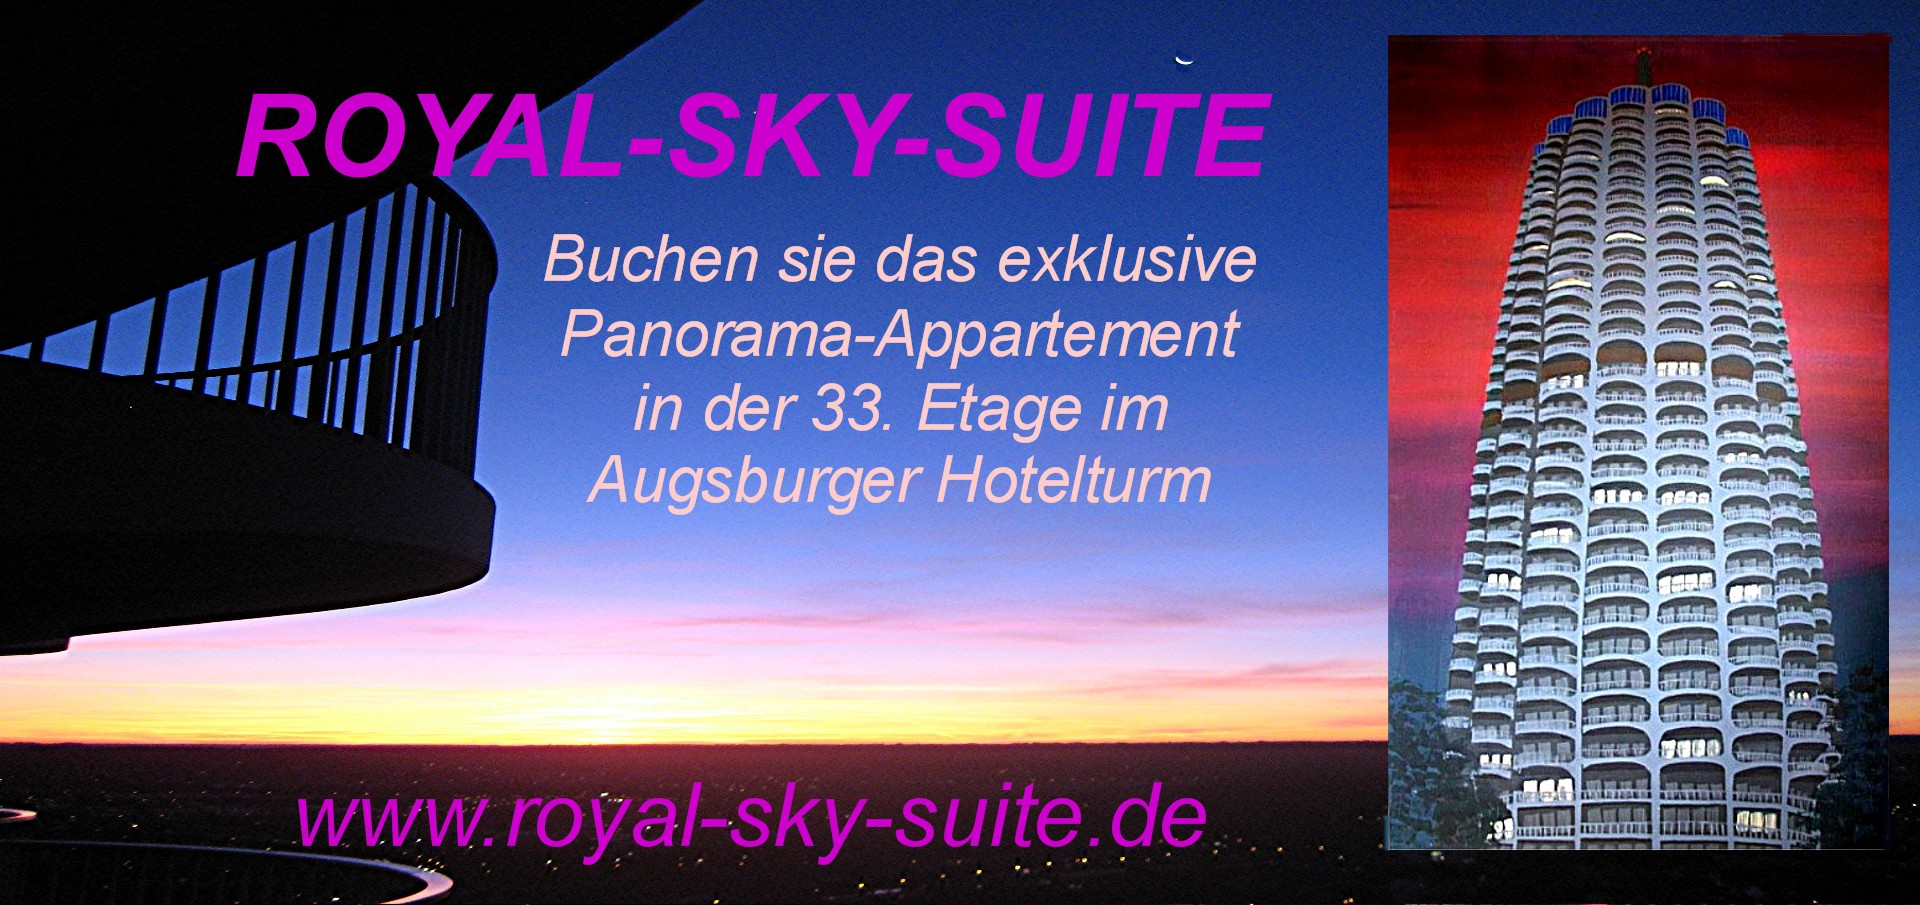 Royal-Sky-Suite